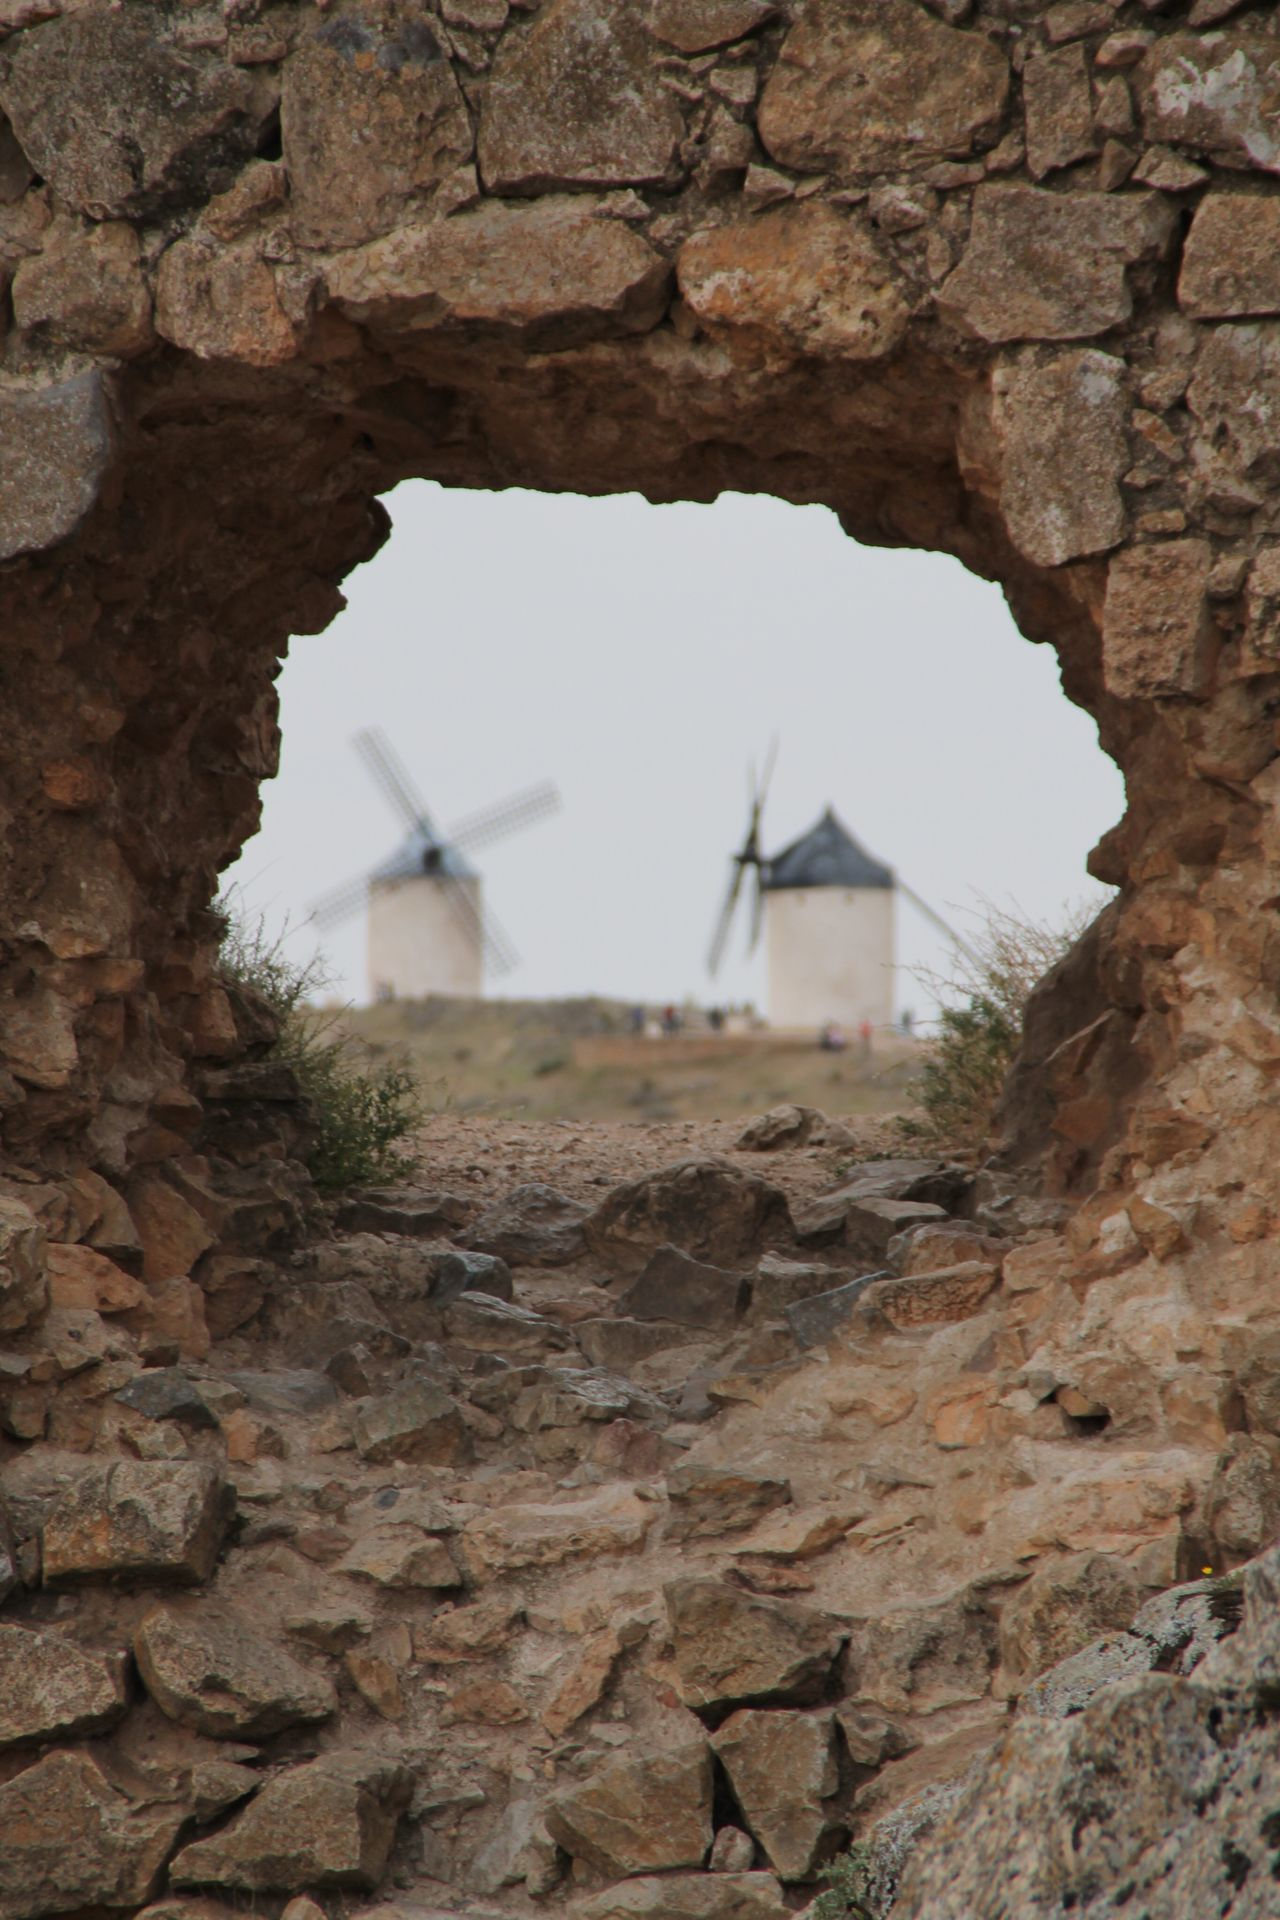 Built Structure Architecture Building Exterior No People Day Outdoors Nature Tree Sky Rural Scene Technology Nature Traditional Windmill Architecture Hanging Out Check This Out Travel Destinations Taking Photos La Mancha Consuegra Windmill Wind Power Wall Stone Wall Window